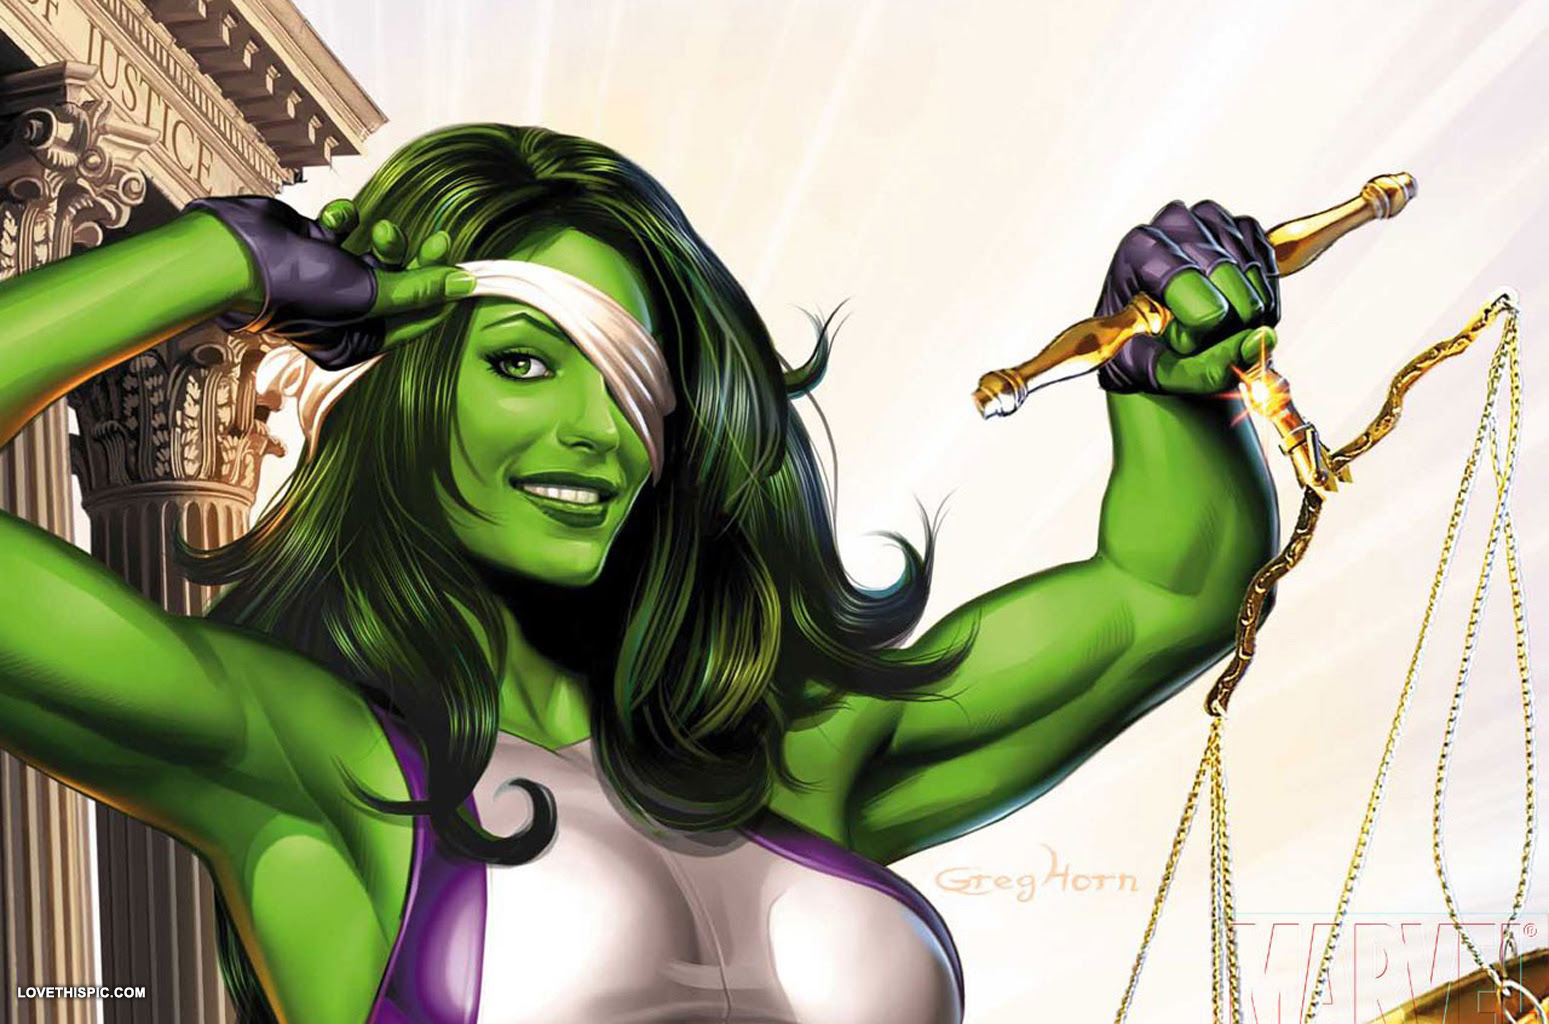 http://www.lovethispic.com/uploaded_images/she_hulk.jpg